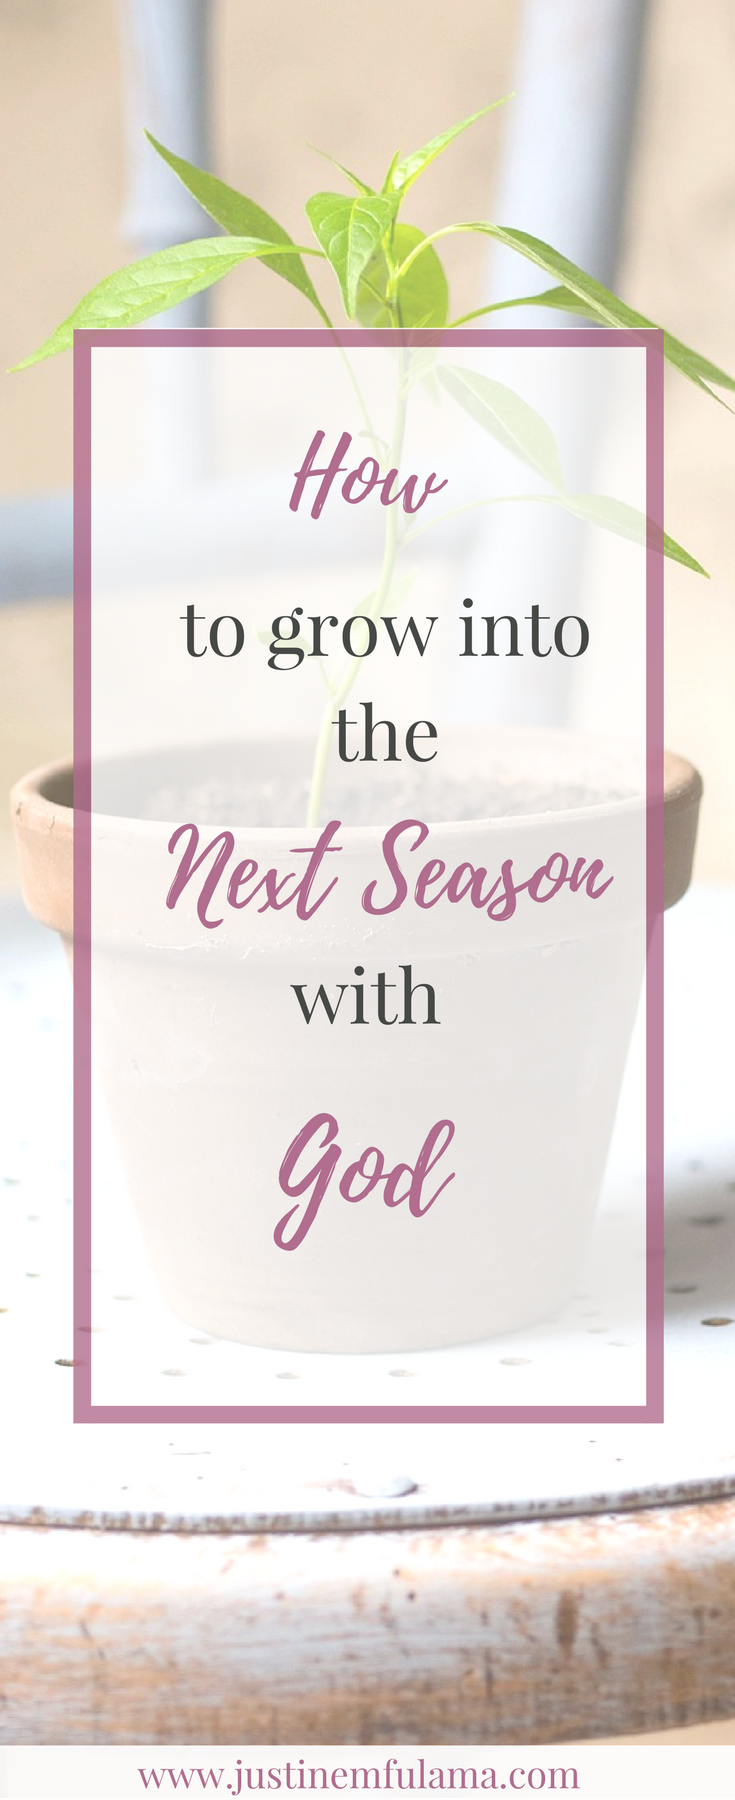 How to grow into the next season with God